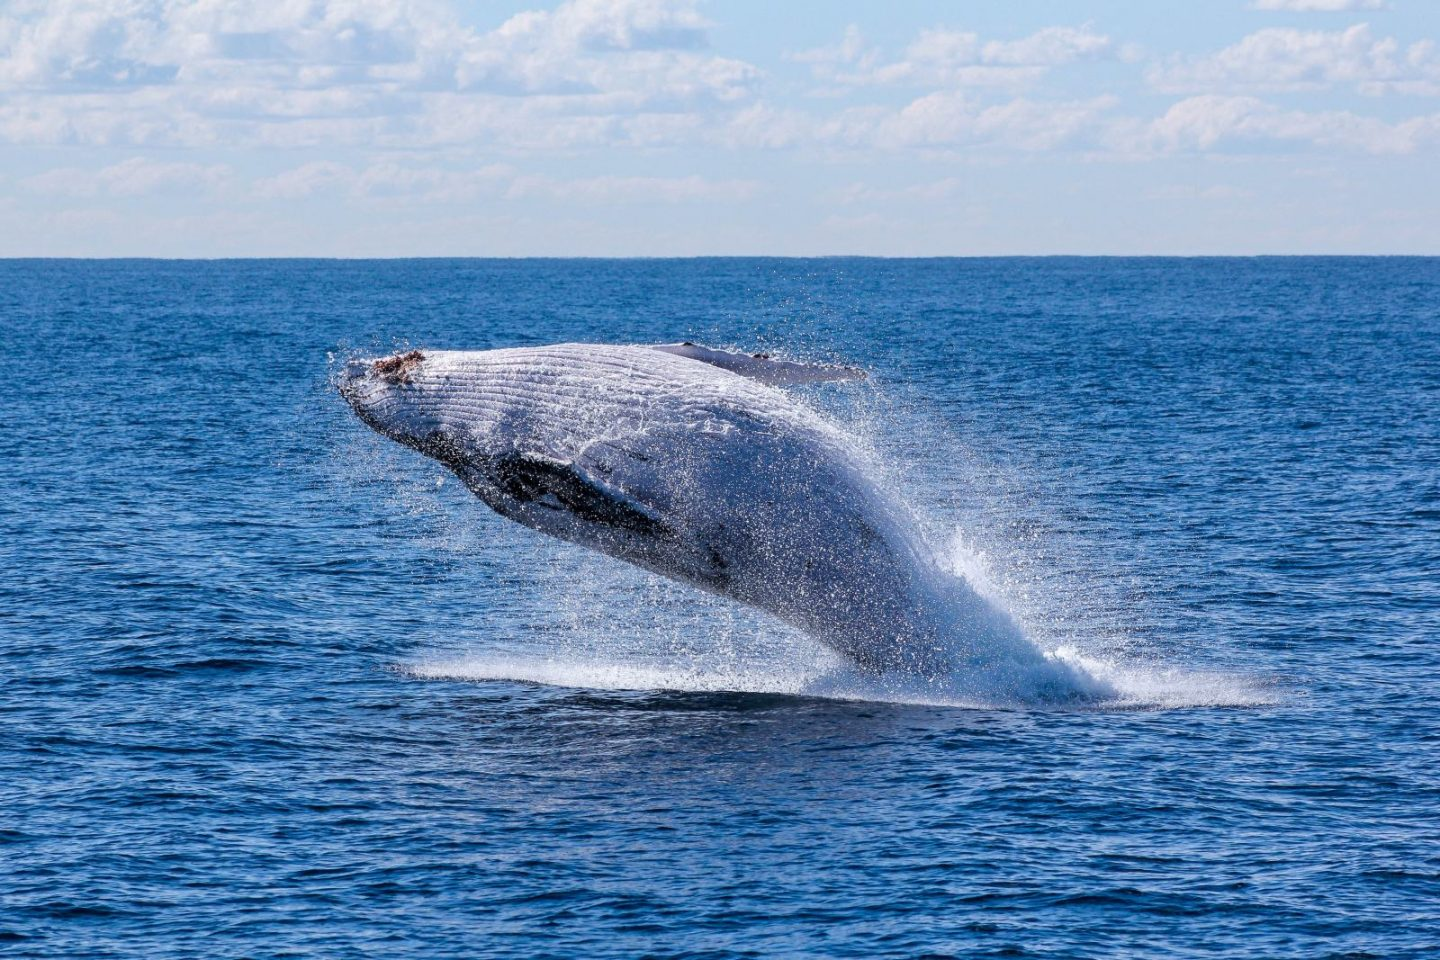 The whale watching season is ON!